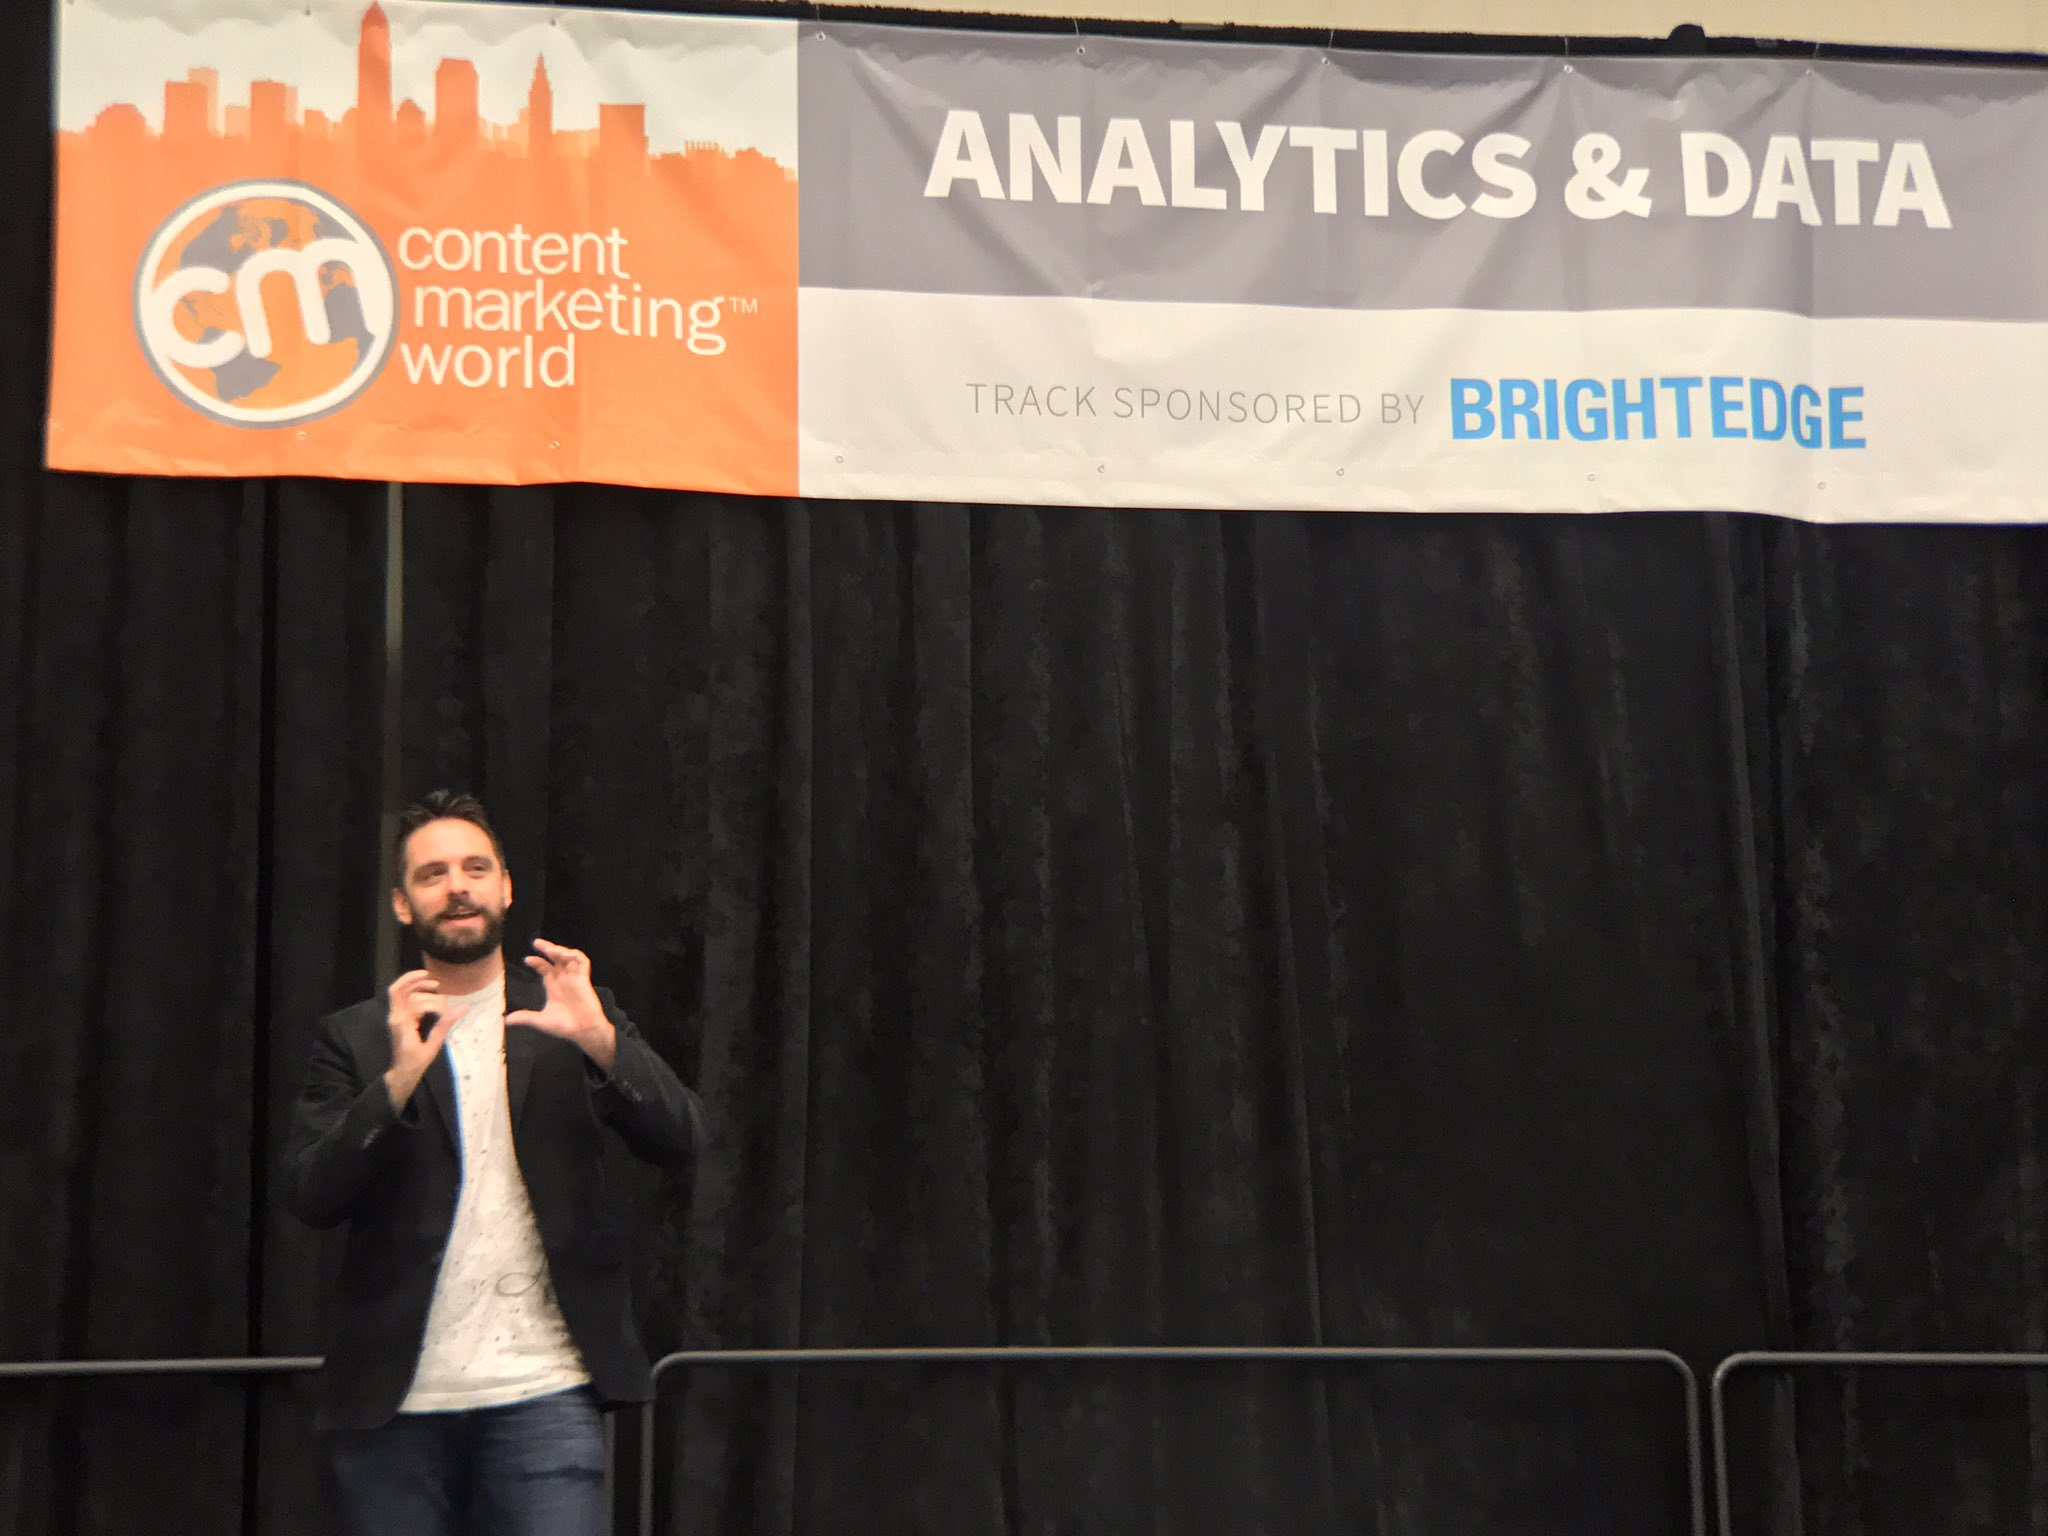 """Data is great because it cuts through all the noise of daily life to tell the stories we want to tell."" @AdamSinger #CMWorld https://t.co/4PXmMqLXwq"